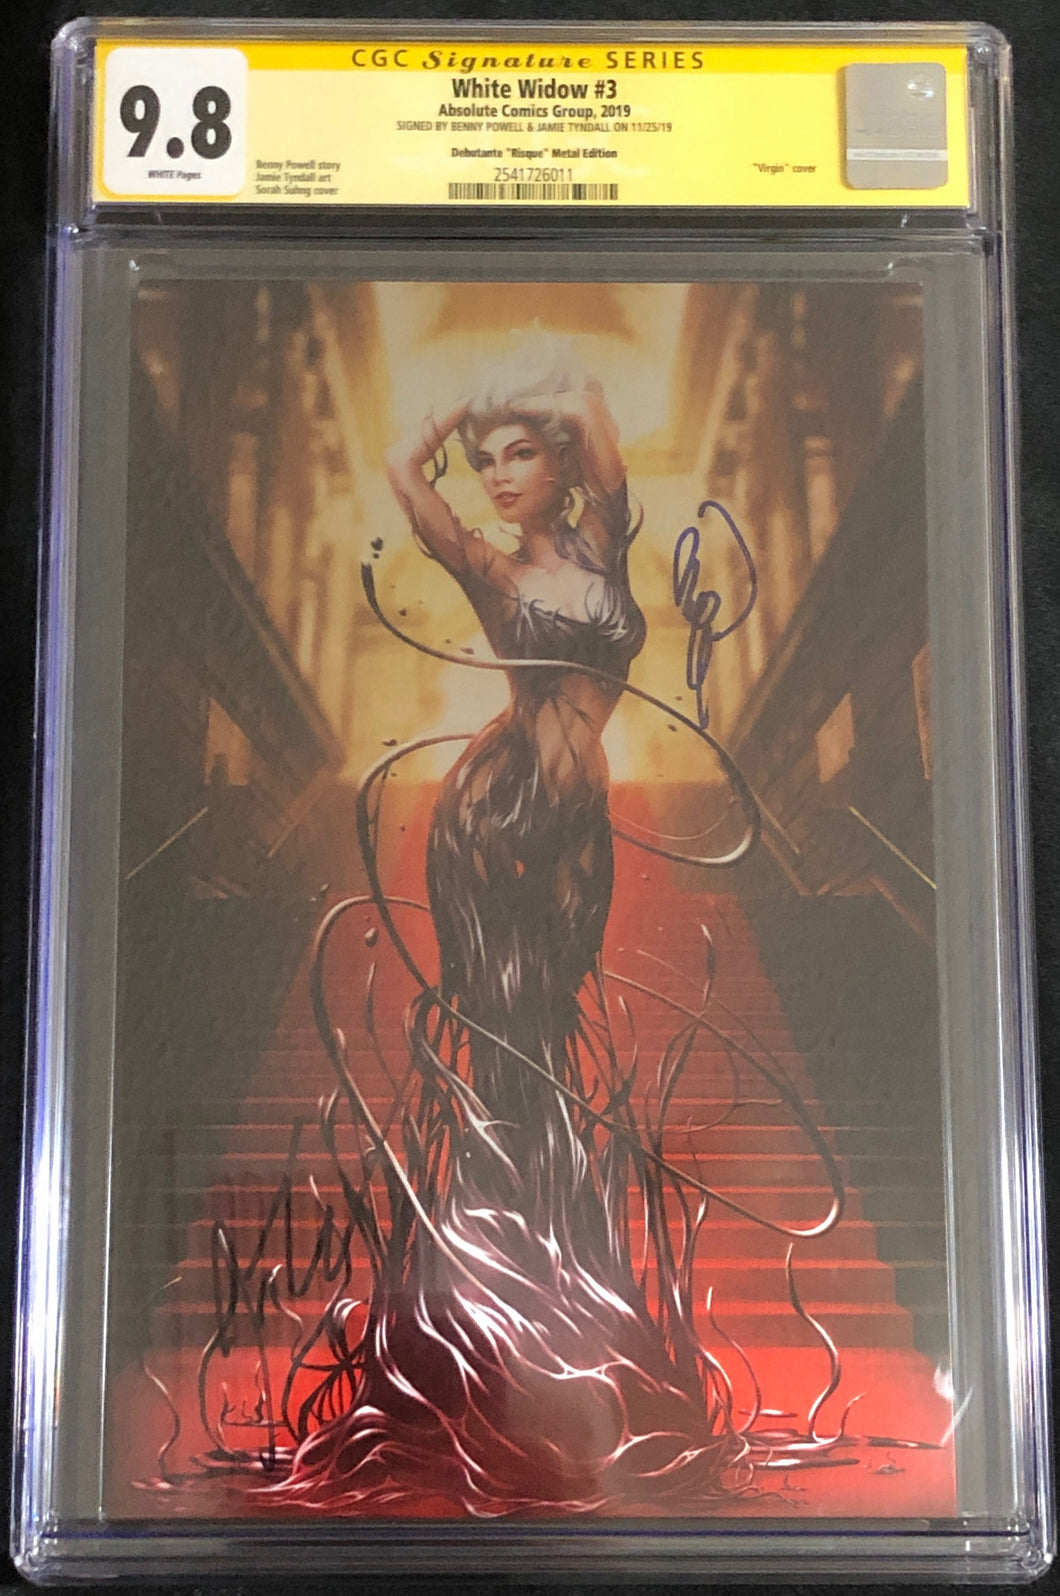 White Widow #3V 9.8 CGC Yellow Label - Debutante Risque METAL - Signed